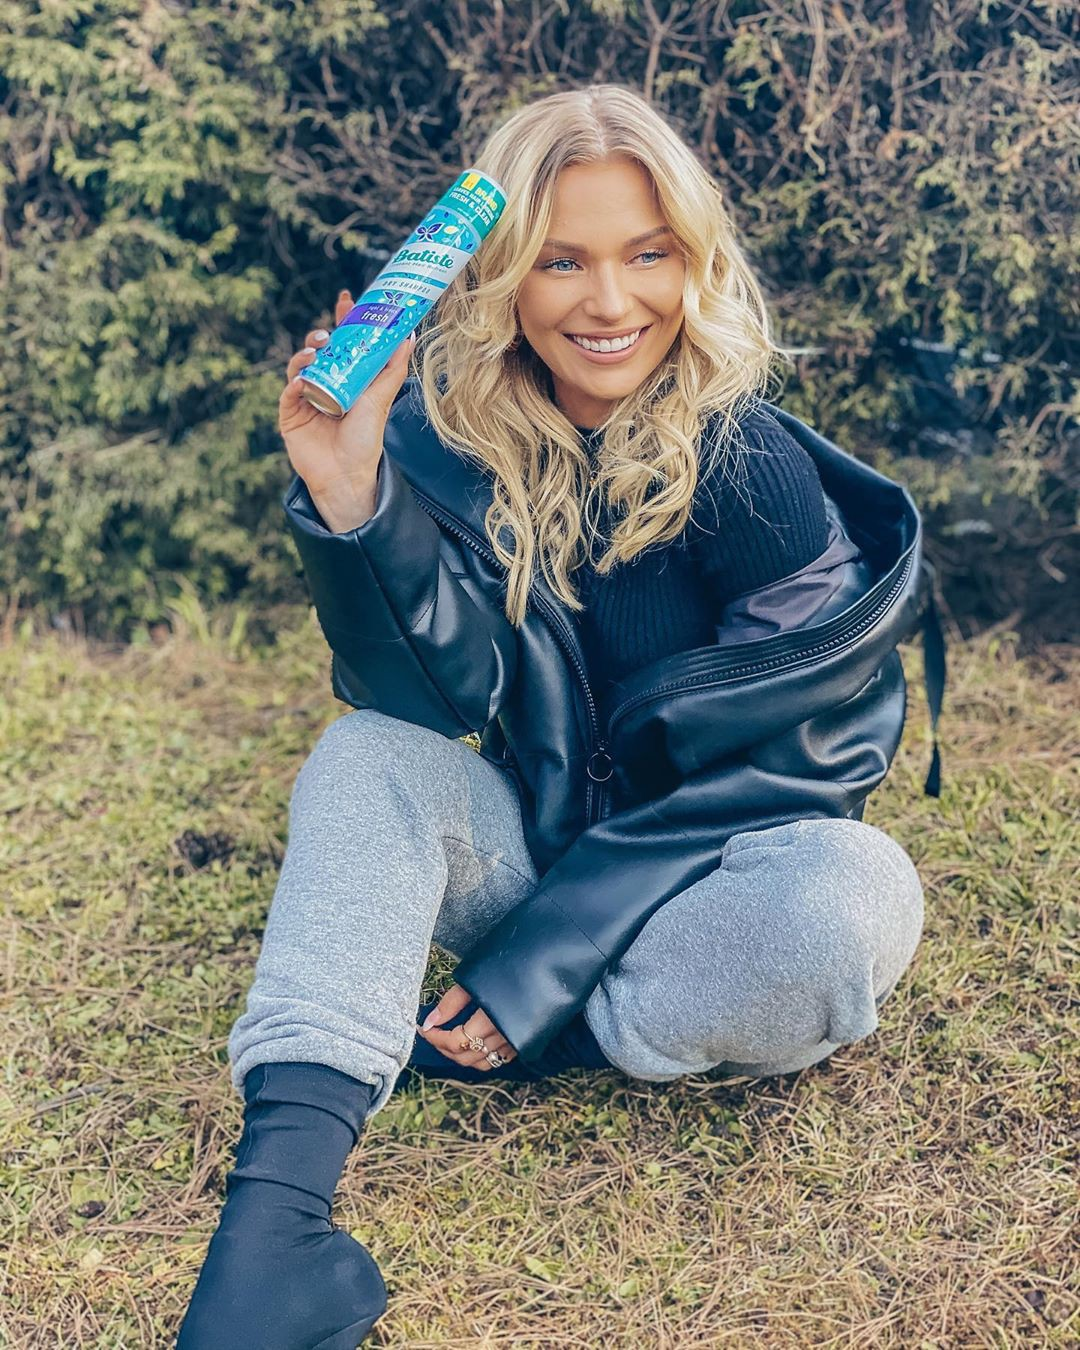 Irina Baeva jeans outfits for girls, blond hairstyle, Long Natural Hair